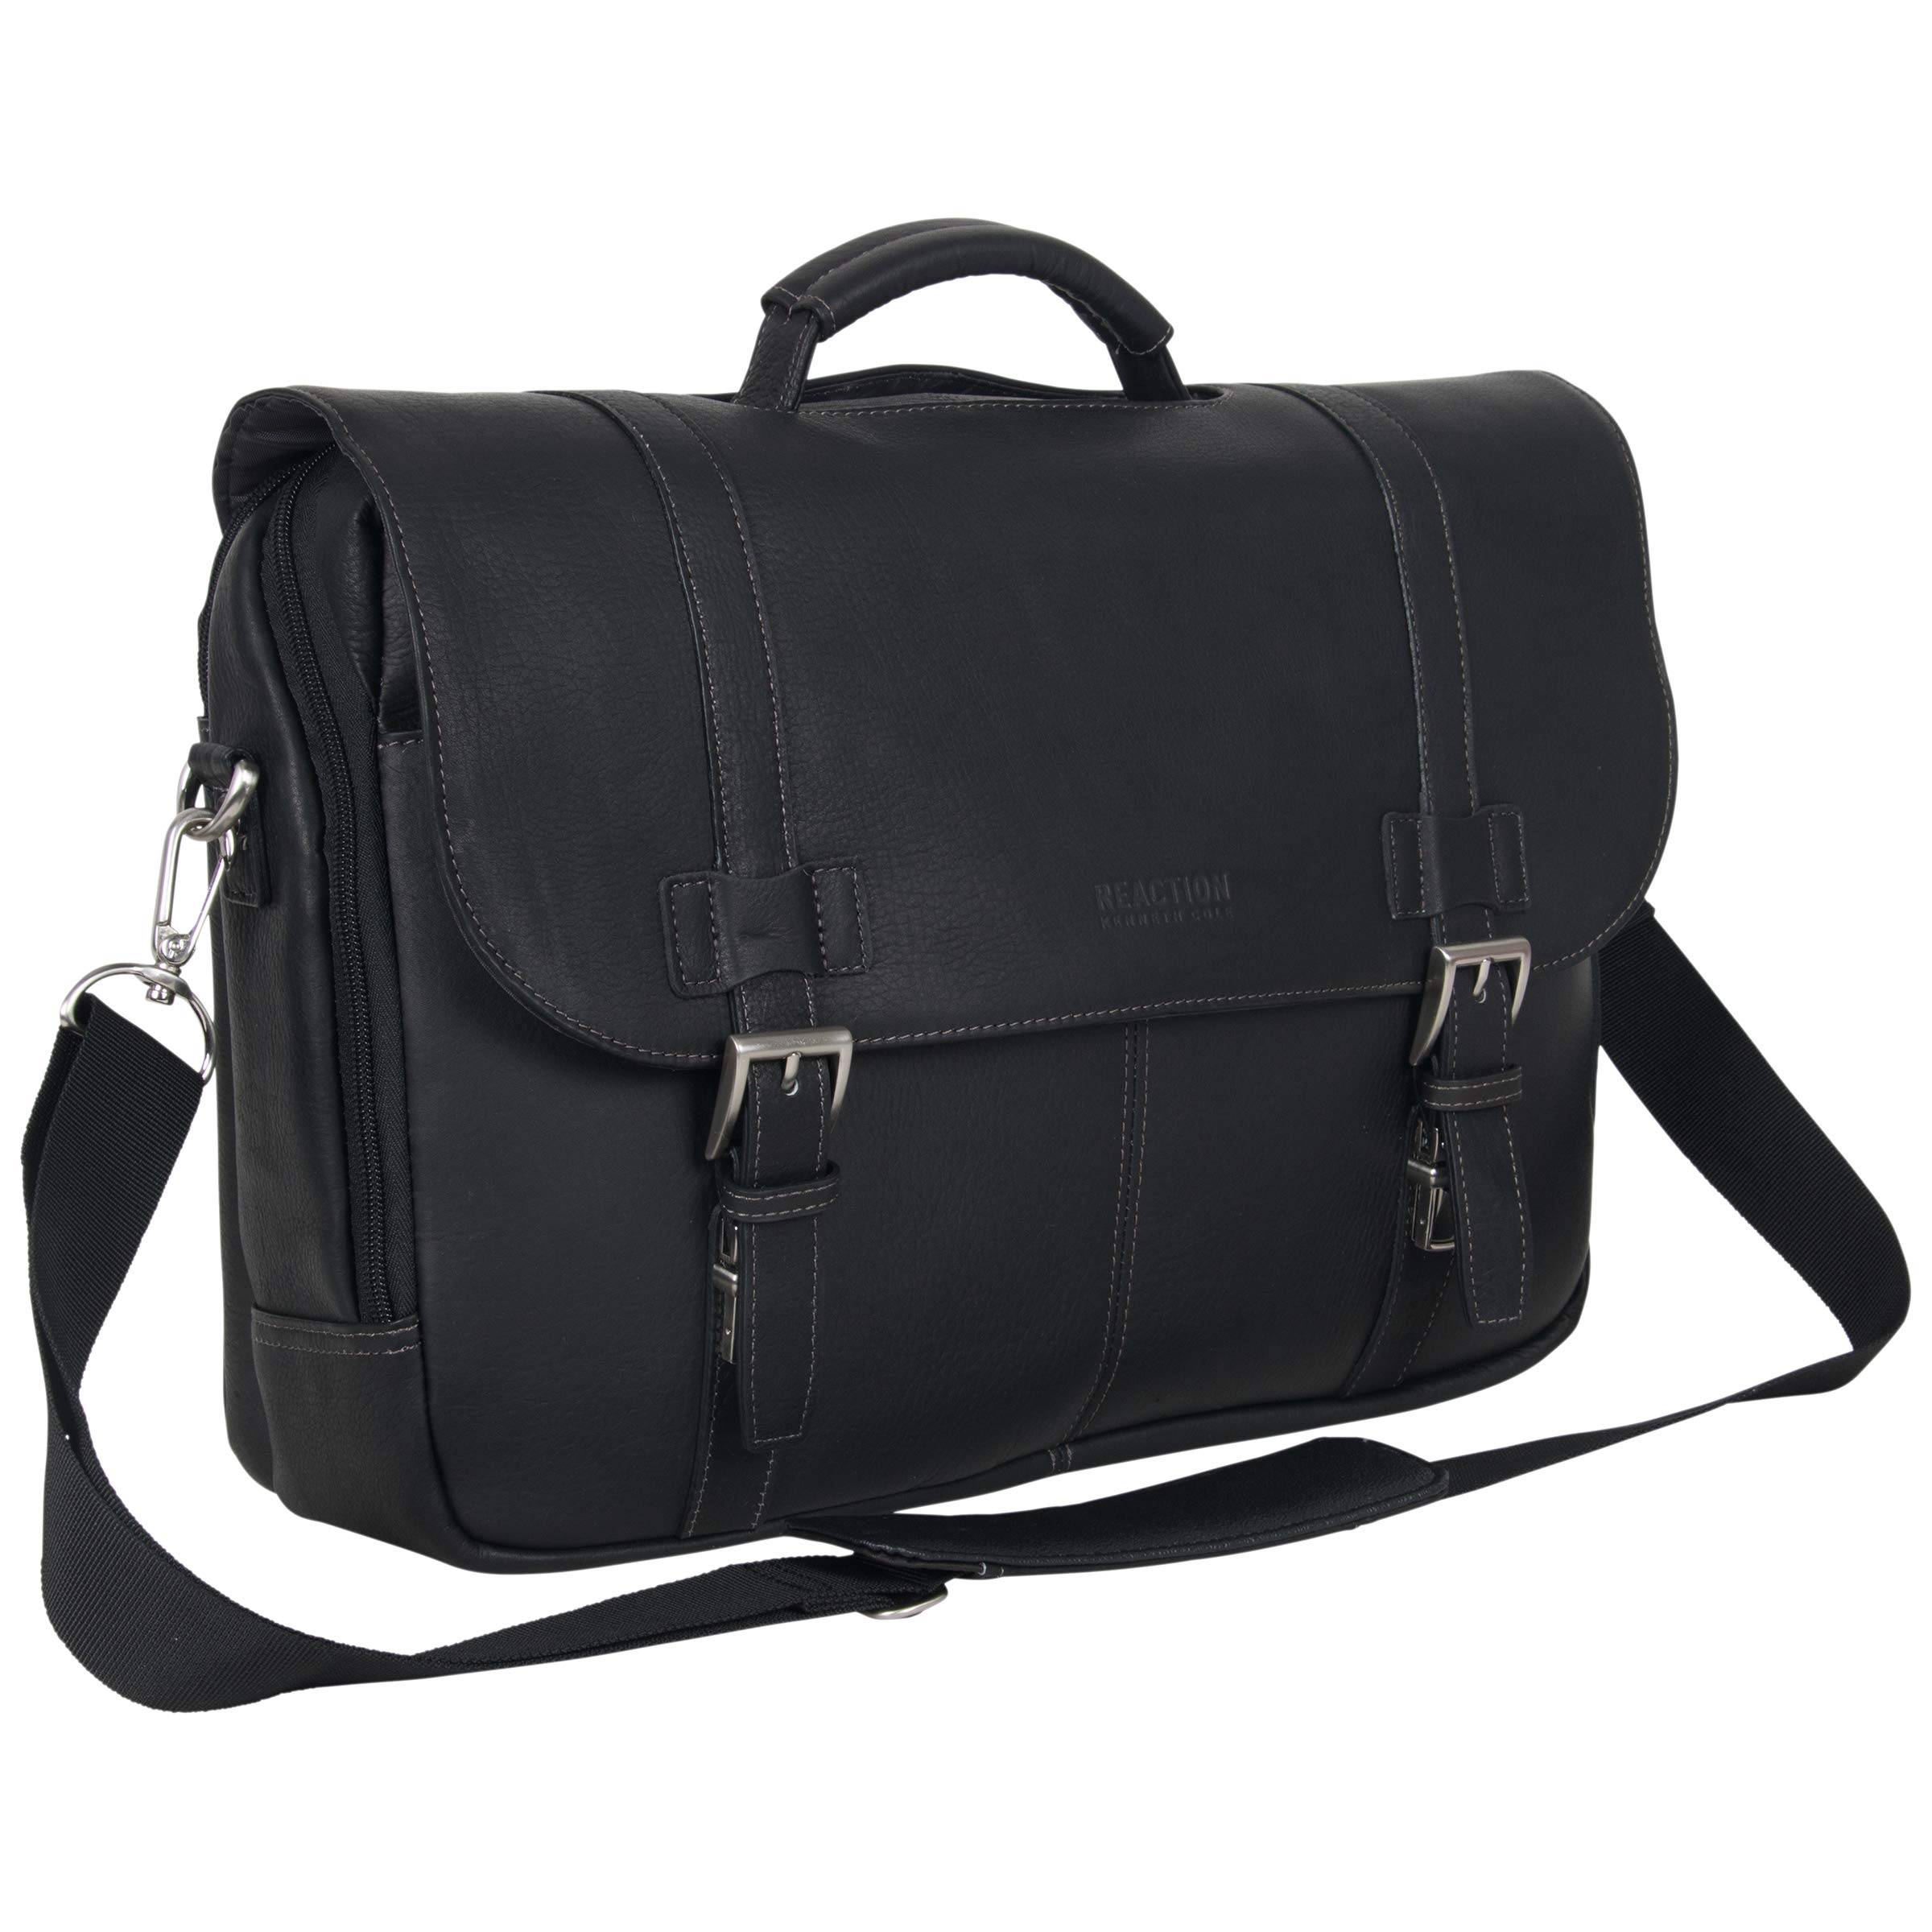 Kenneth Cole Reaction Show Full-Grain Colombian Leather Dual Compartment Flapover 15.6-inch Laptop Business Portfolio, Black by Kenneth Cole REACTION